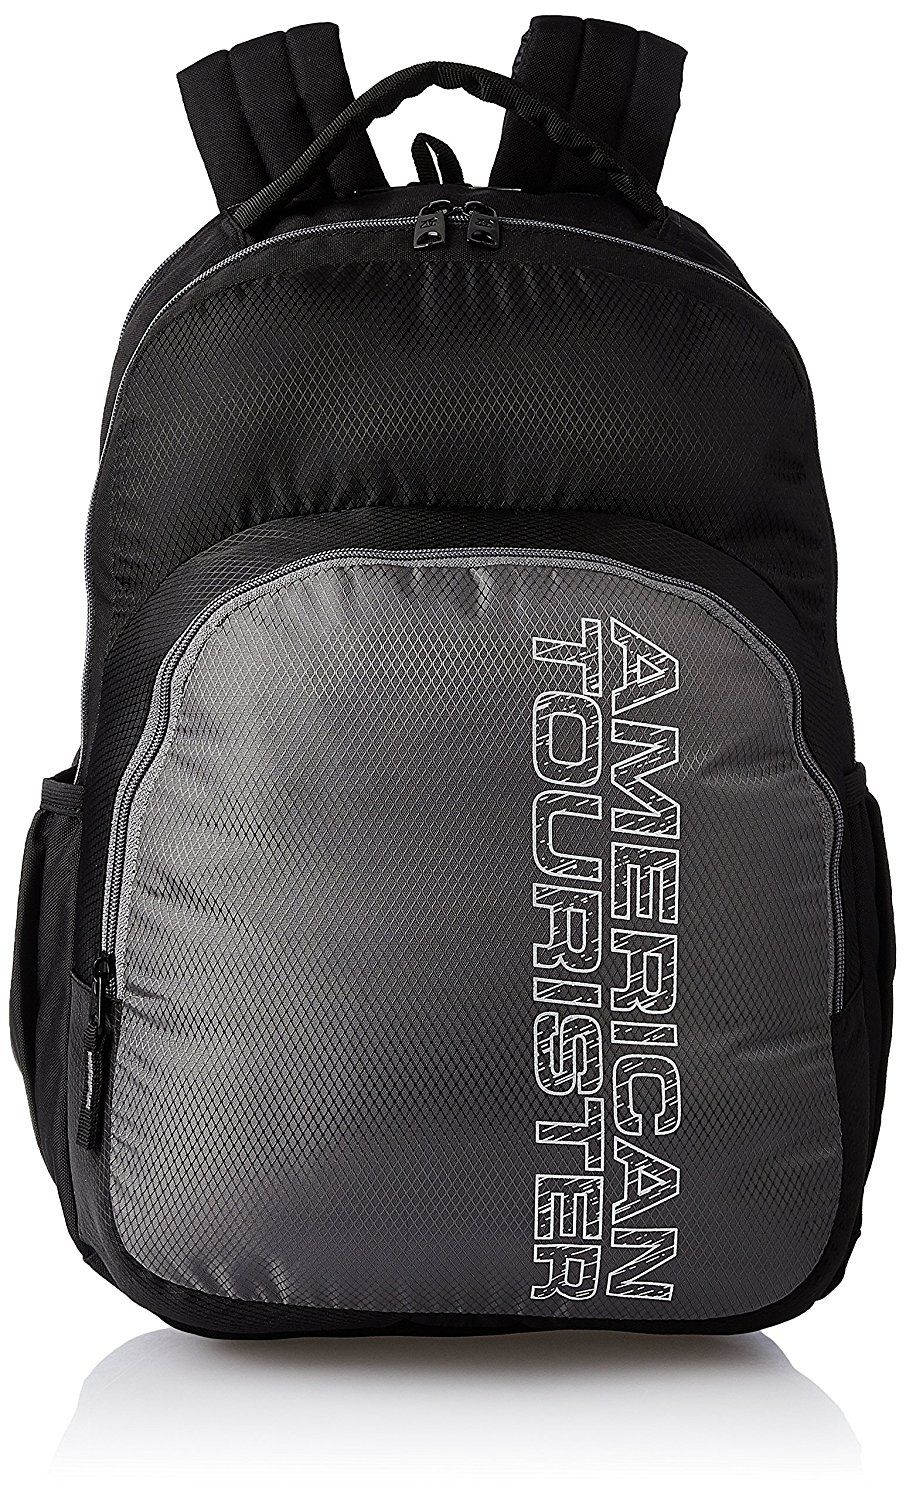 4cec3a1142  4  American Tourister Jasper 13 ltrs Black Kids Backpack (5 - 7 years age)